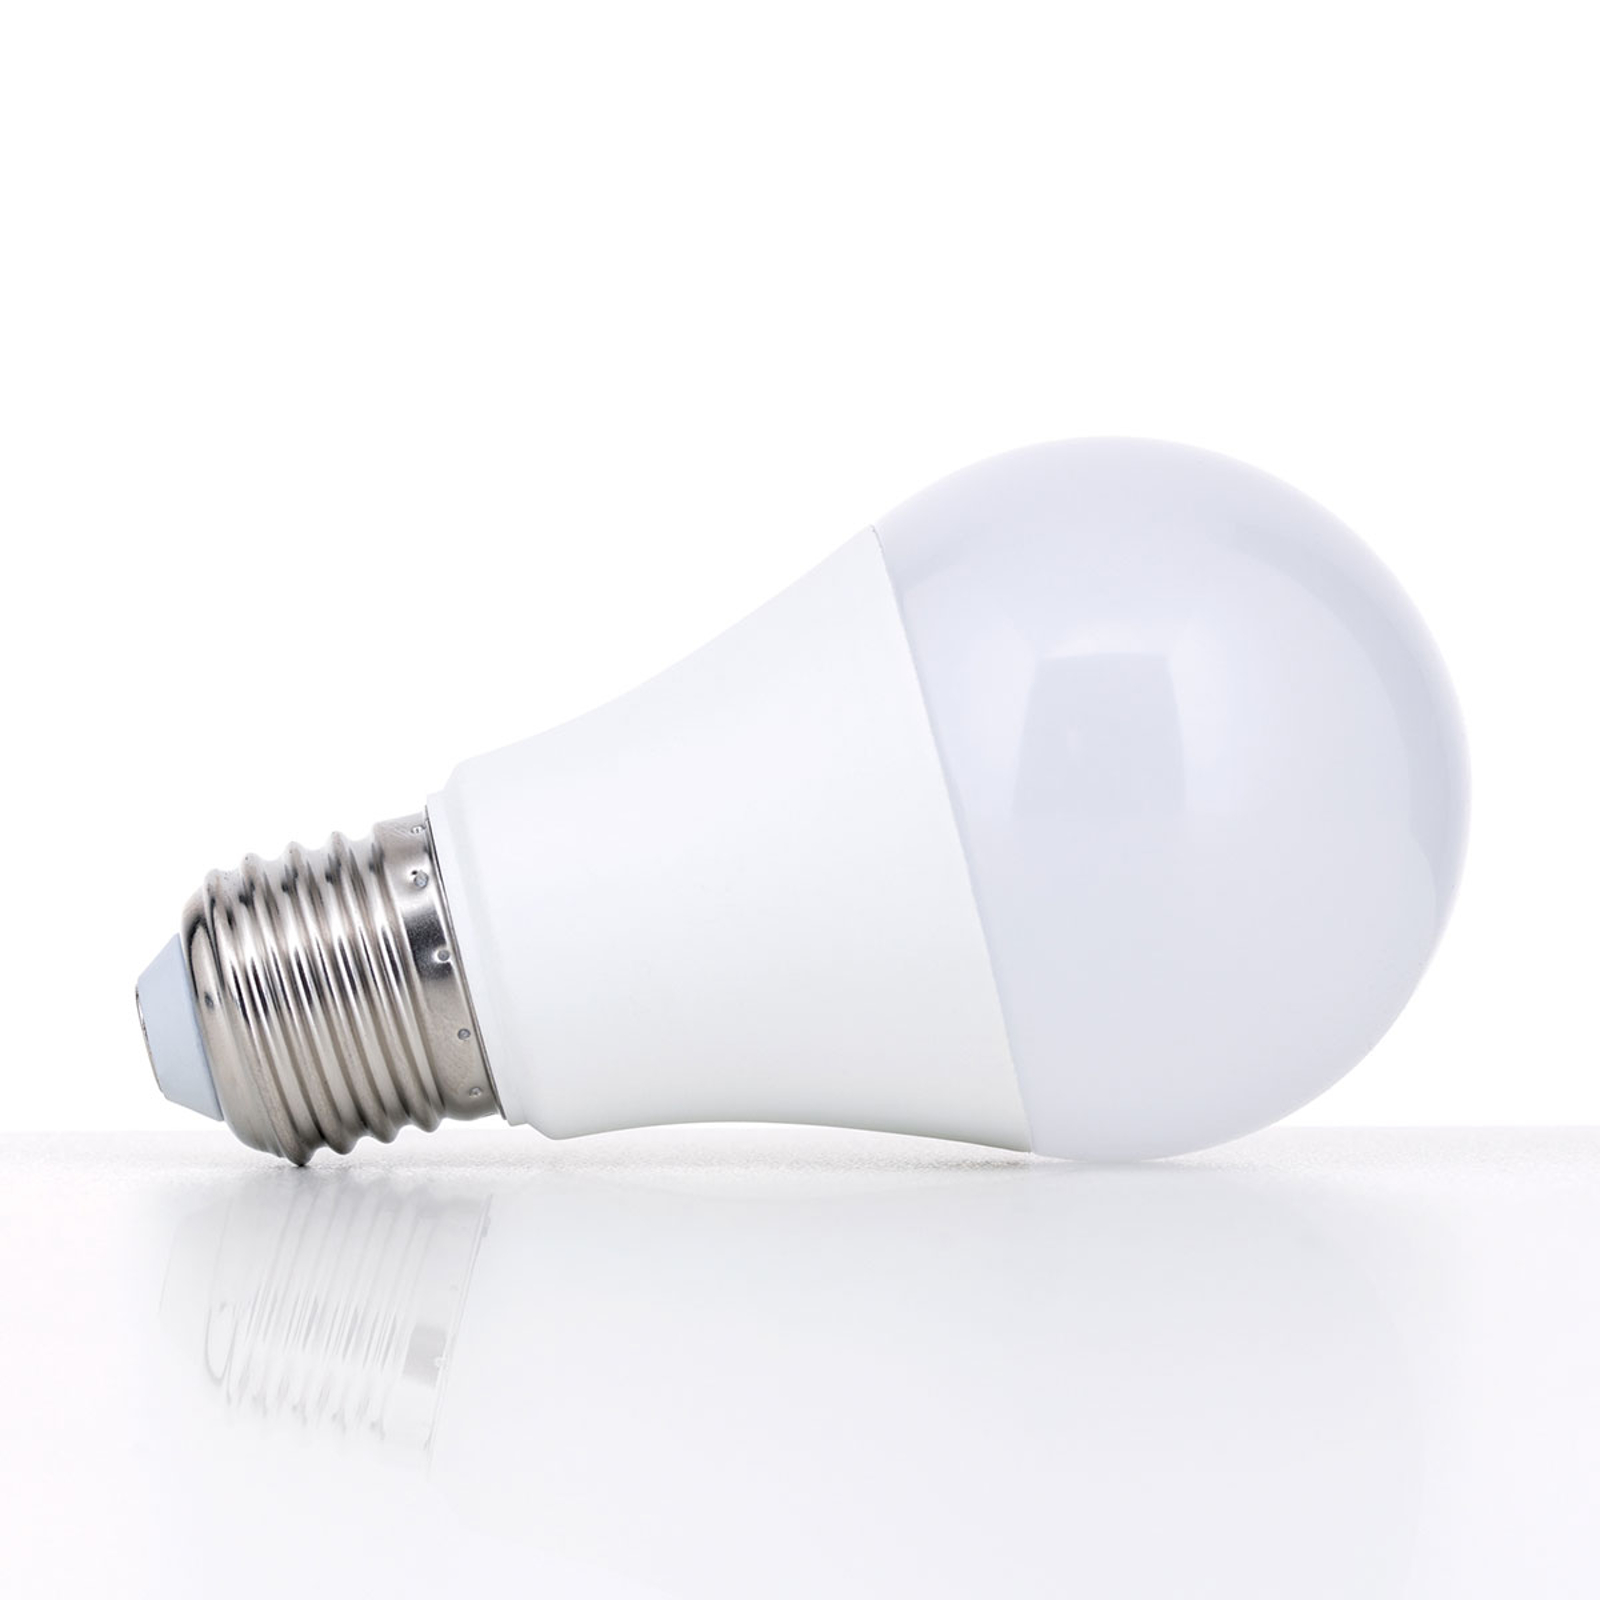 E27 LED lamp 5W warmwit, opaal, niet dimbaar